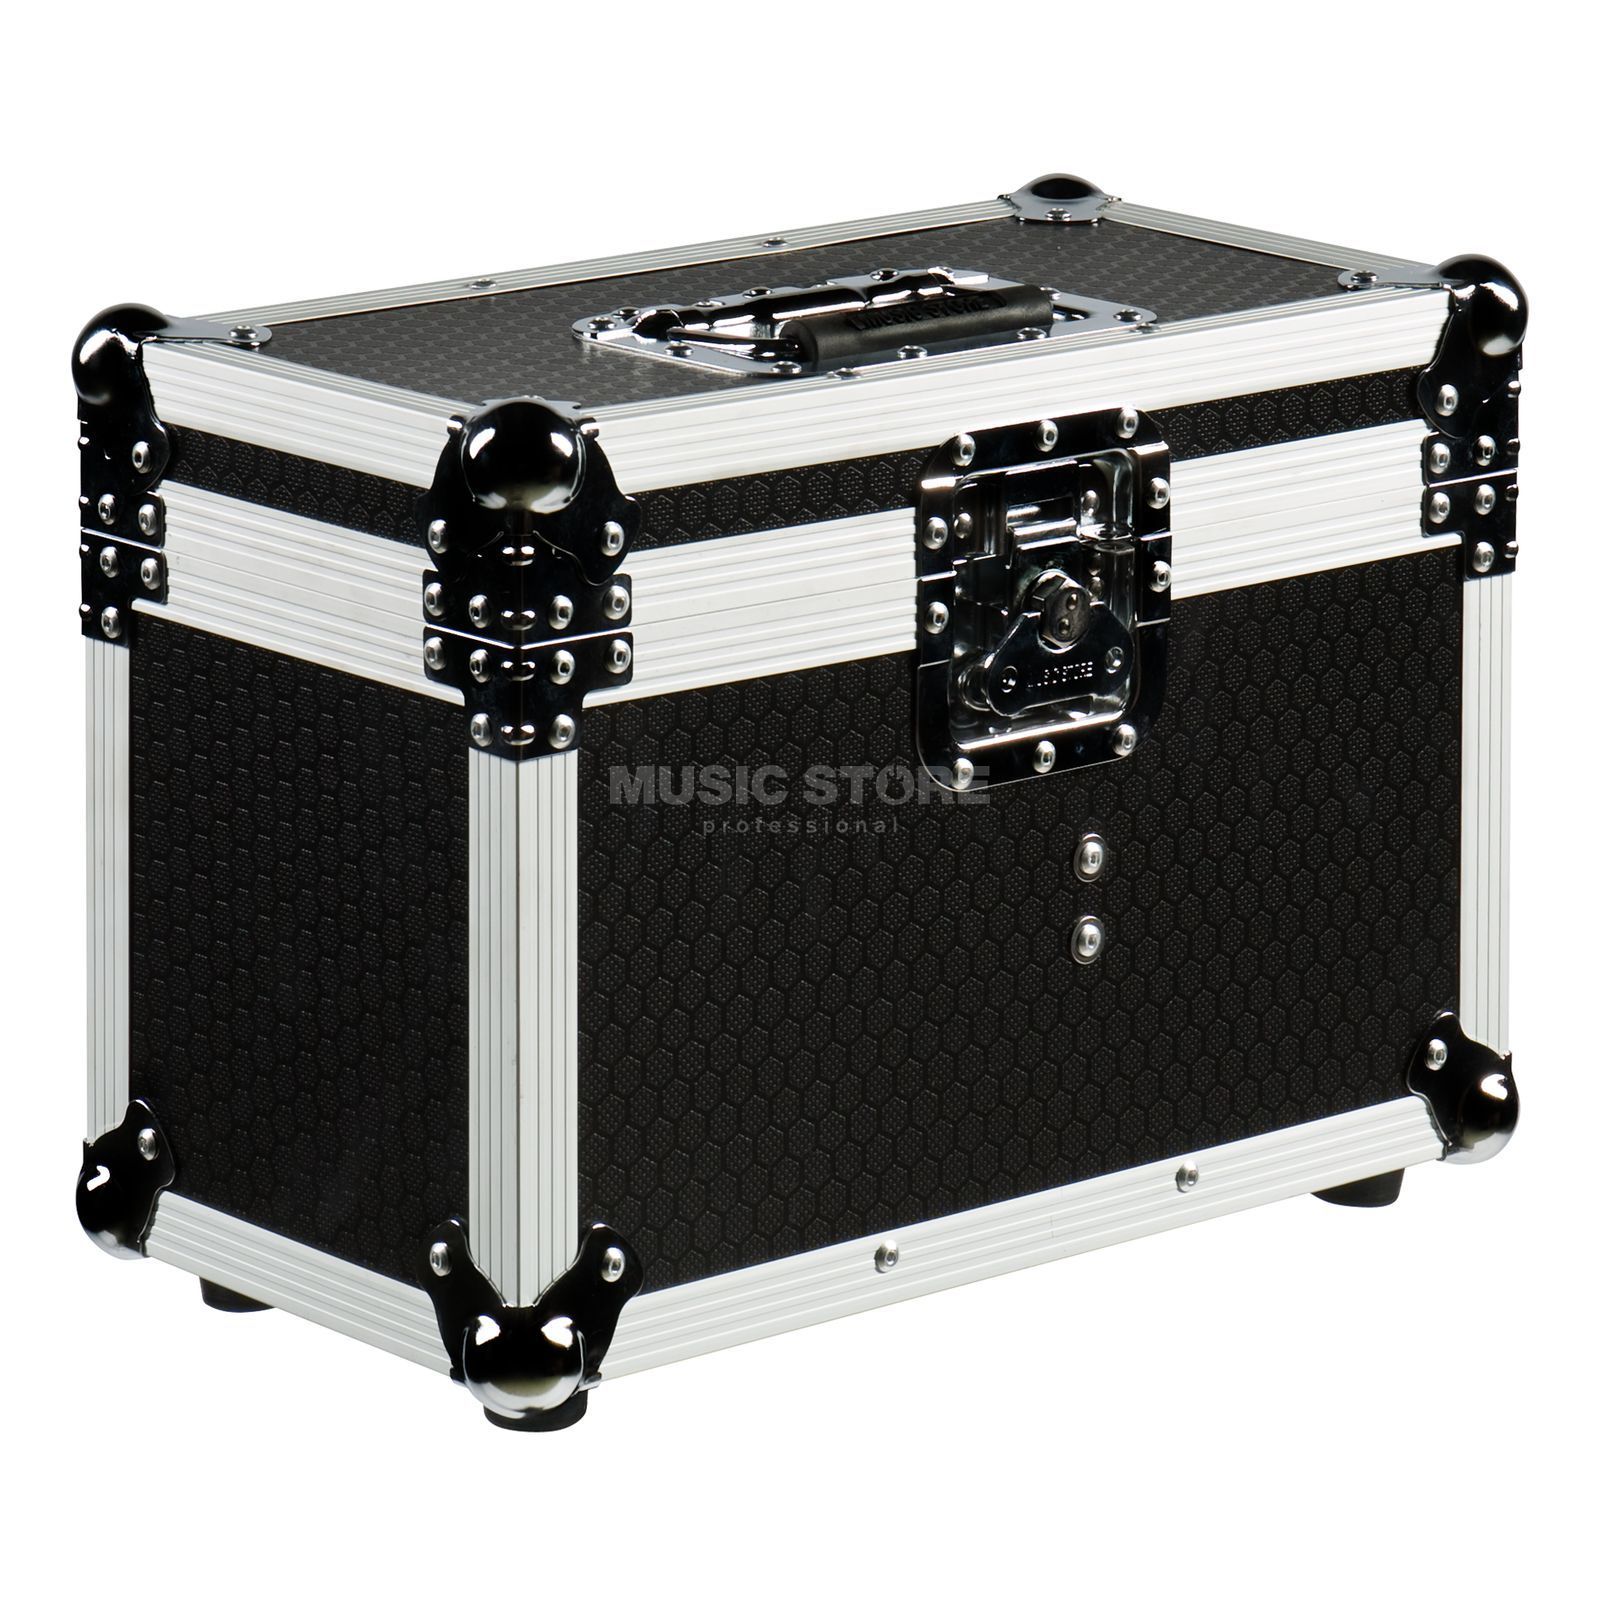 lightmaXX TOUR CASE 2x MICRO HEADS NANO BOT, EASY WASH, POCKET Product Image